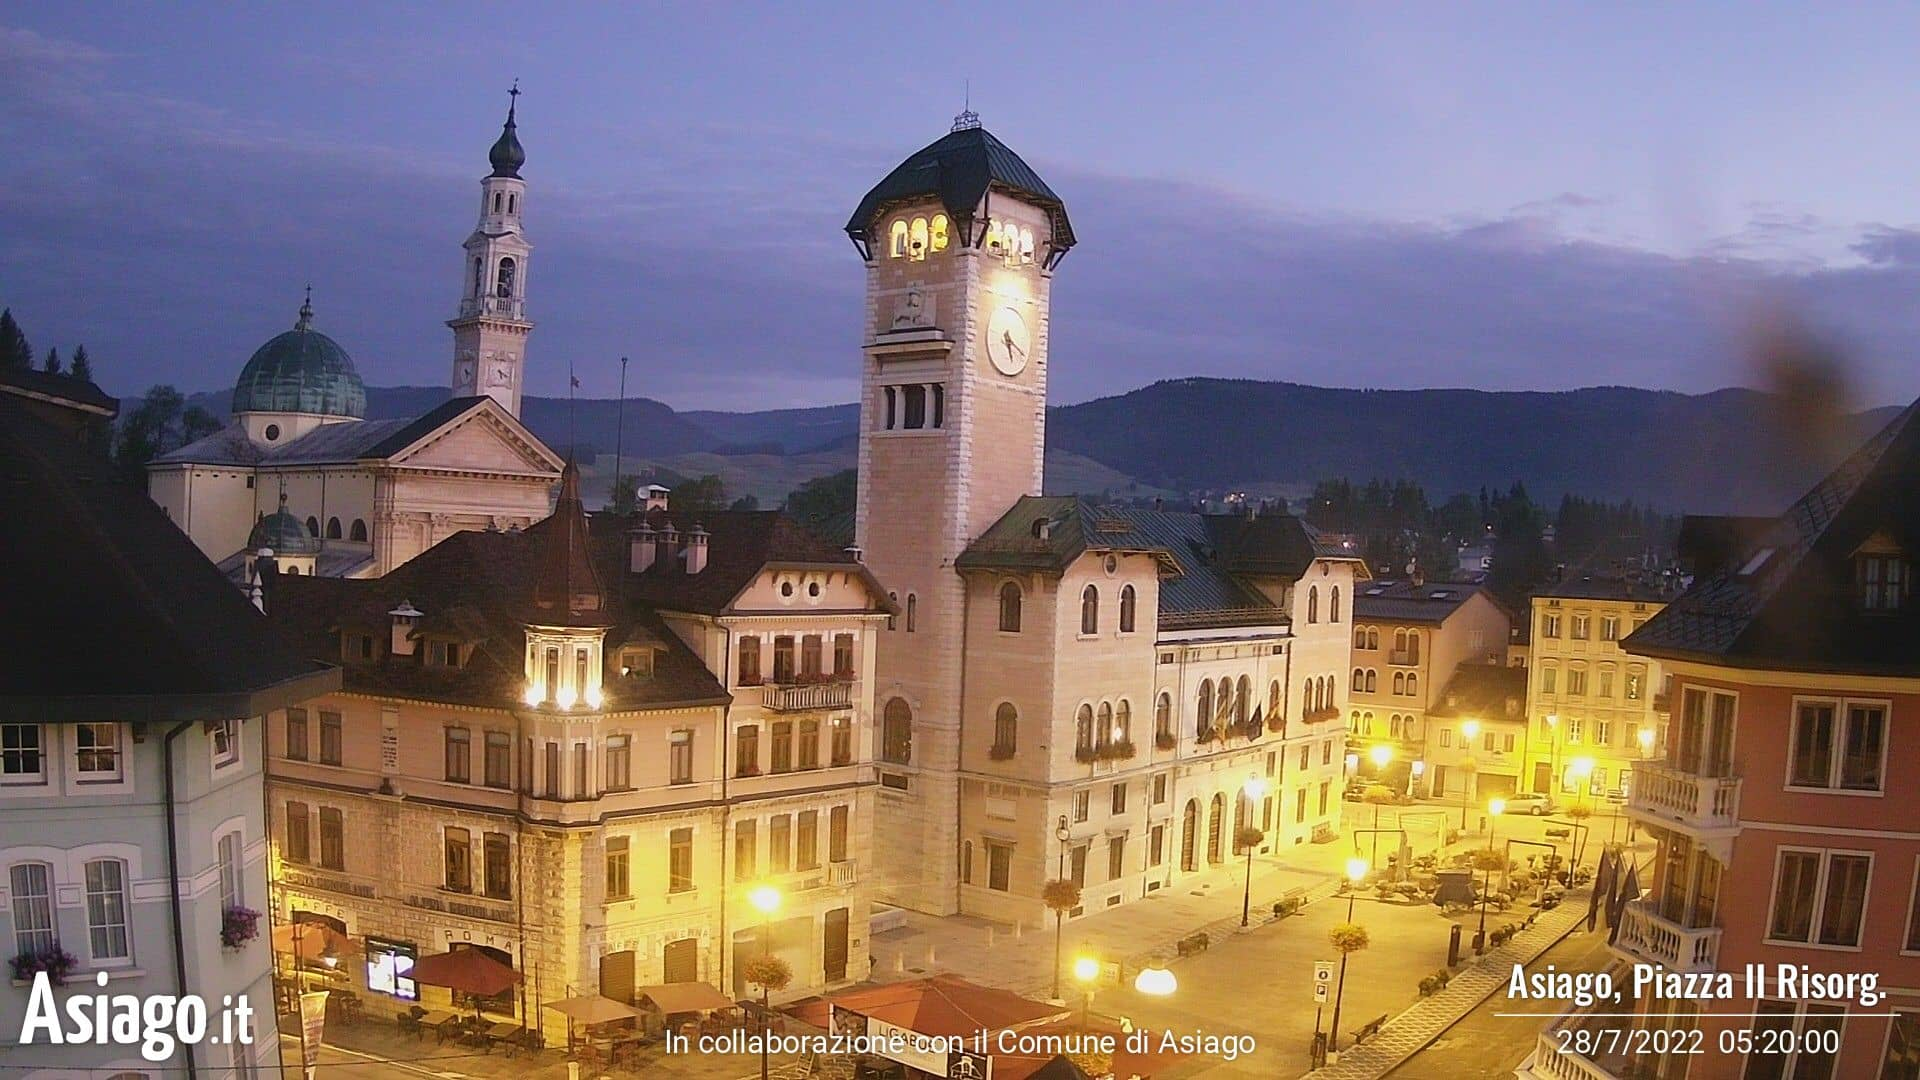 Live webcams on Piazza II Risorgimento in Asiago